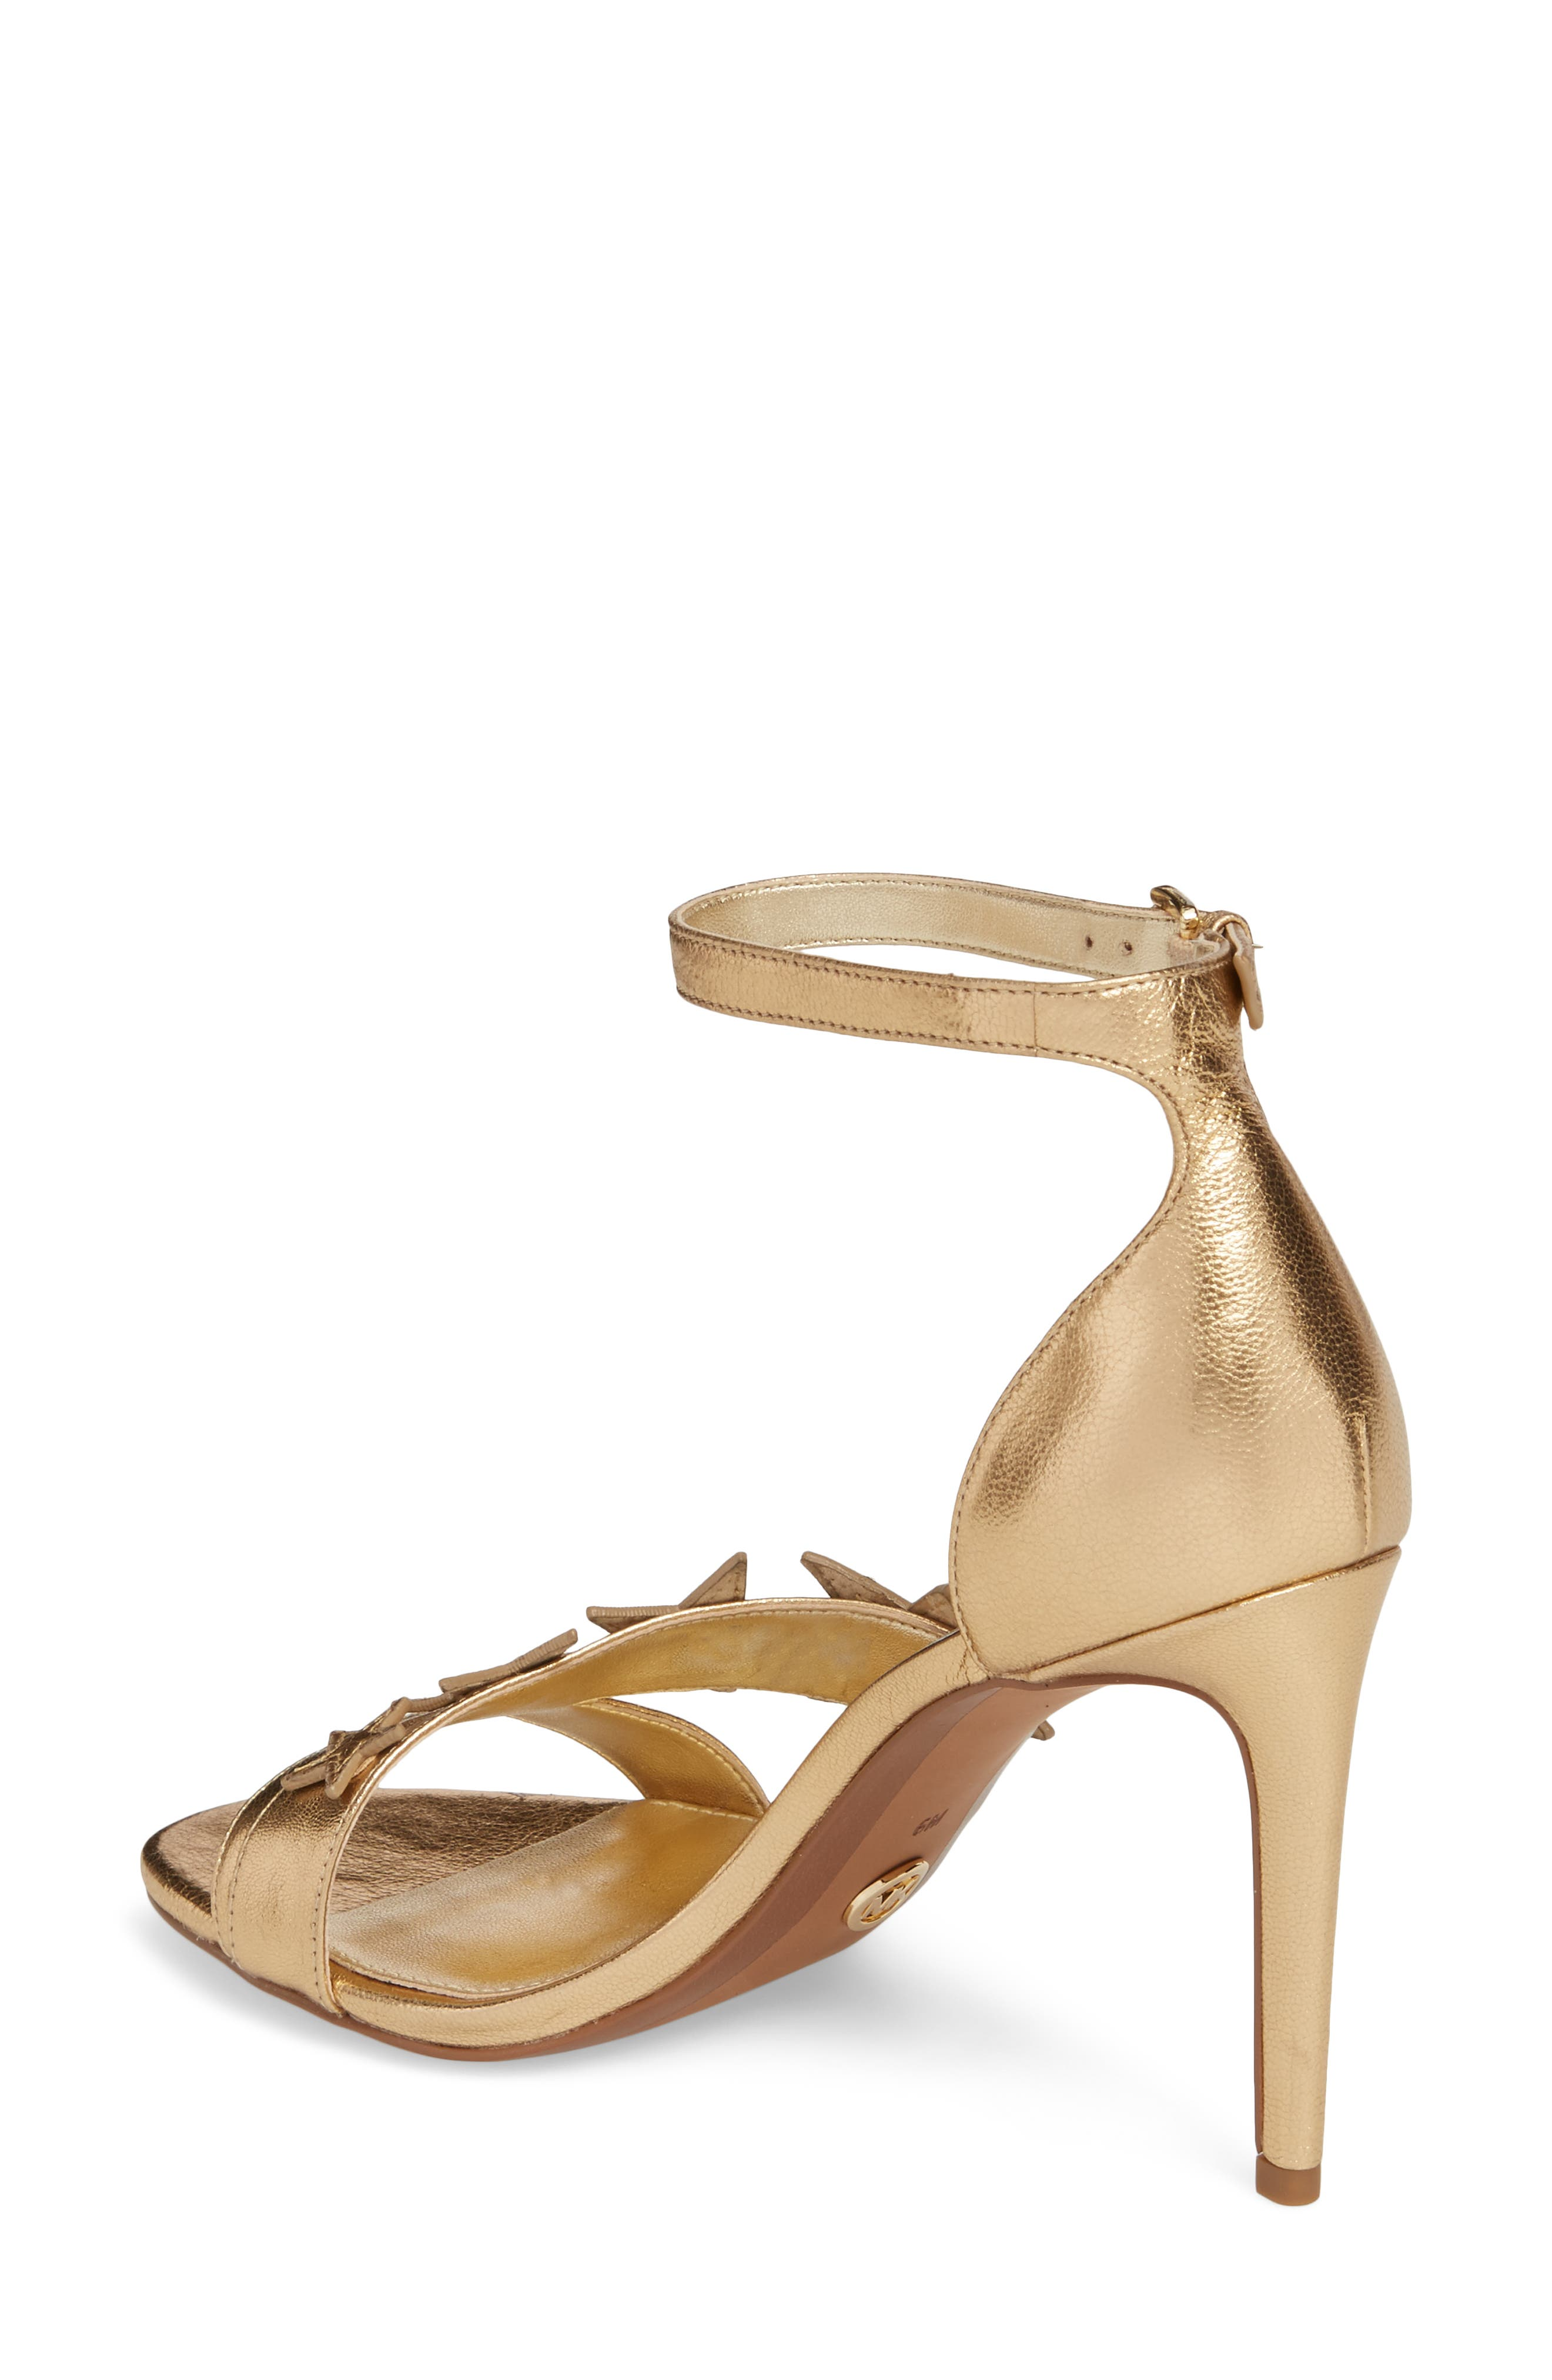 Lexie Sandal,                             Alternate thumbnail 2, color,                             Pale Gold Nappa Leather